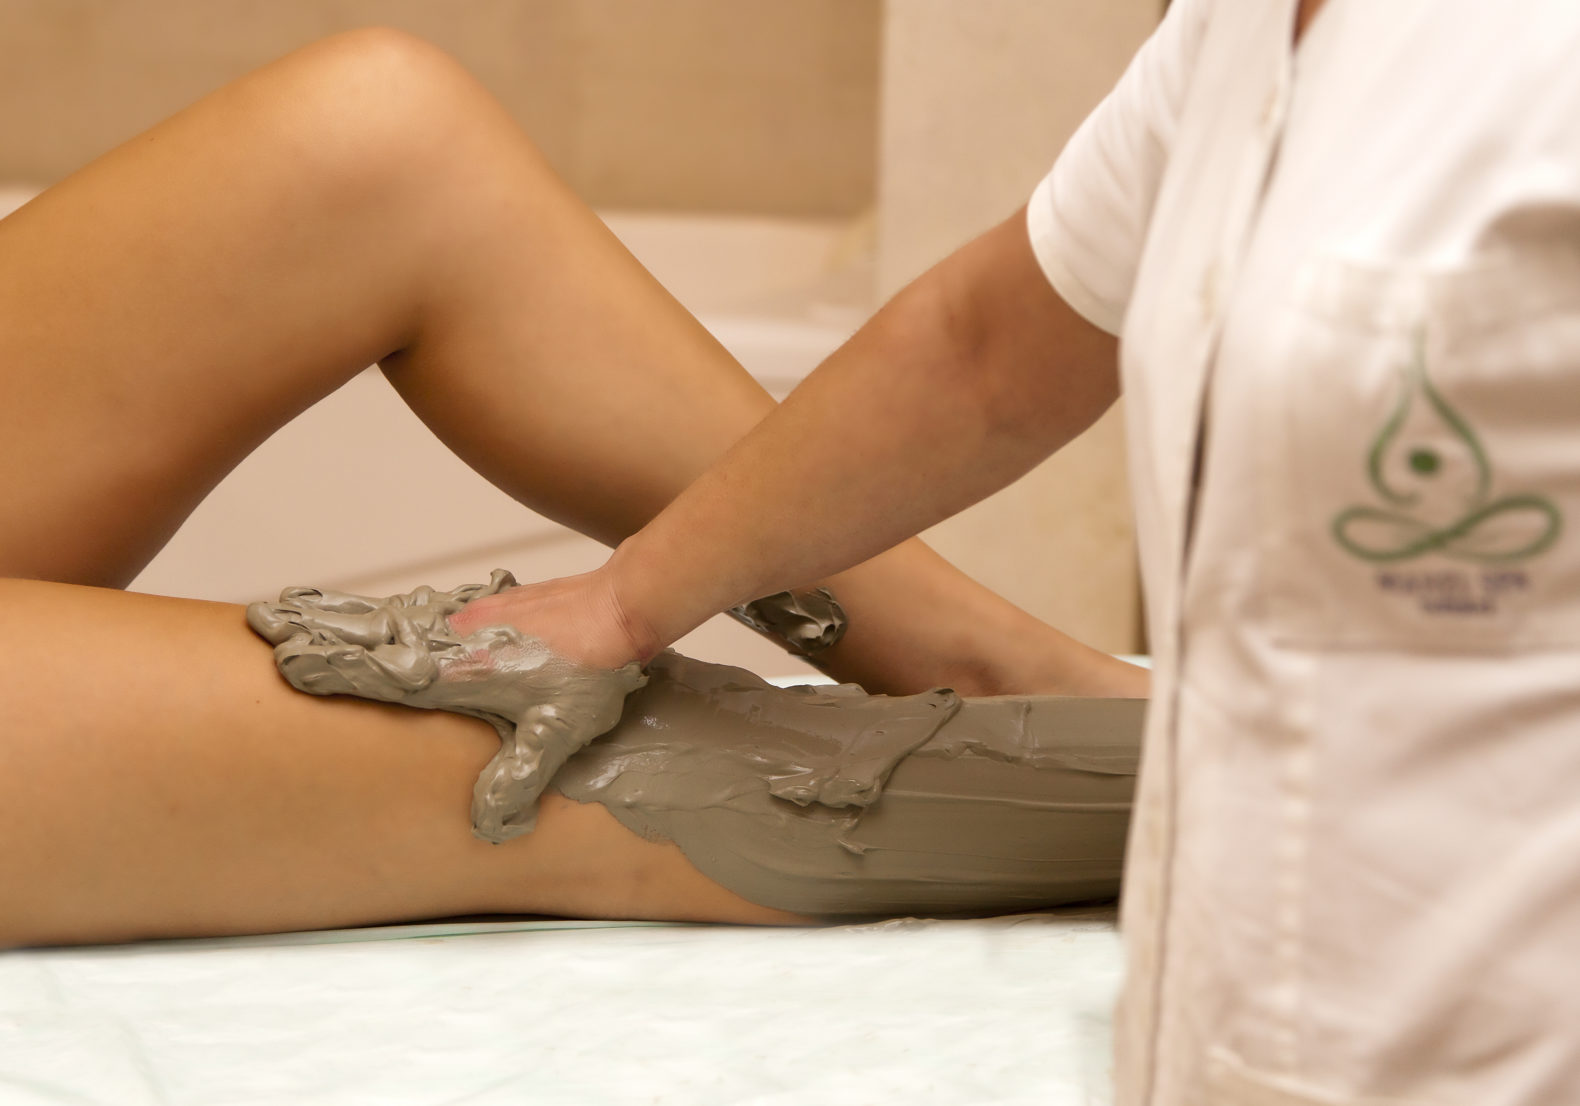 mud-massage-cleansing-terme-manzi-italy